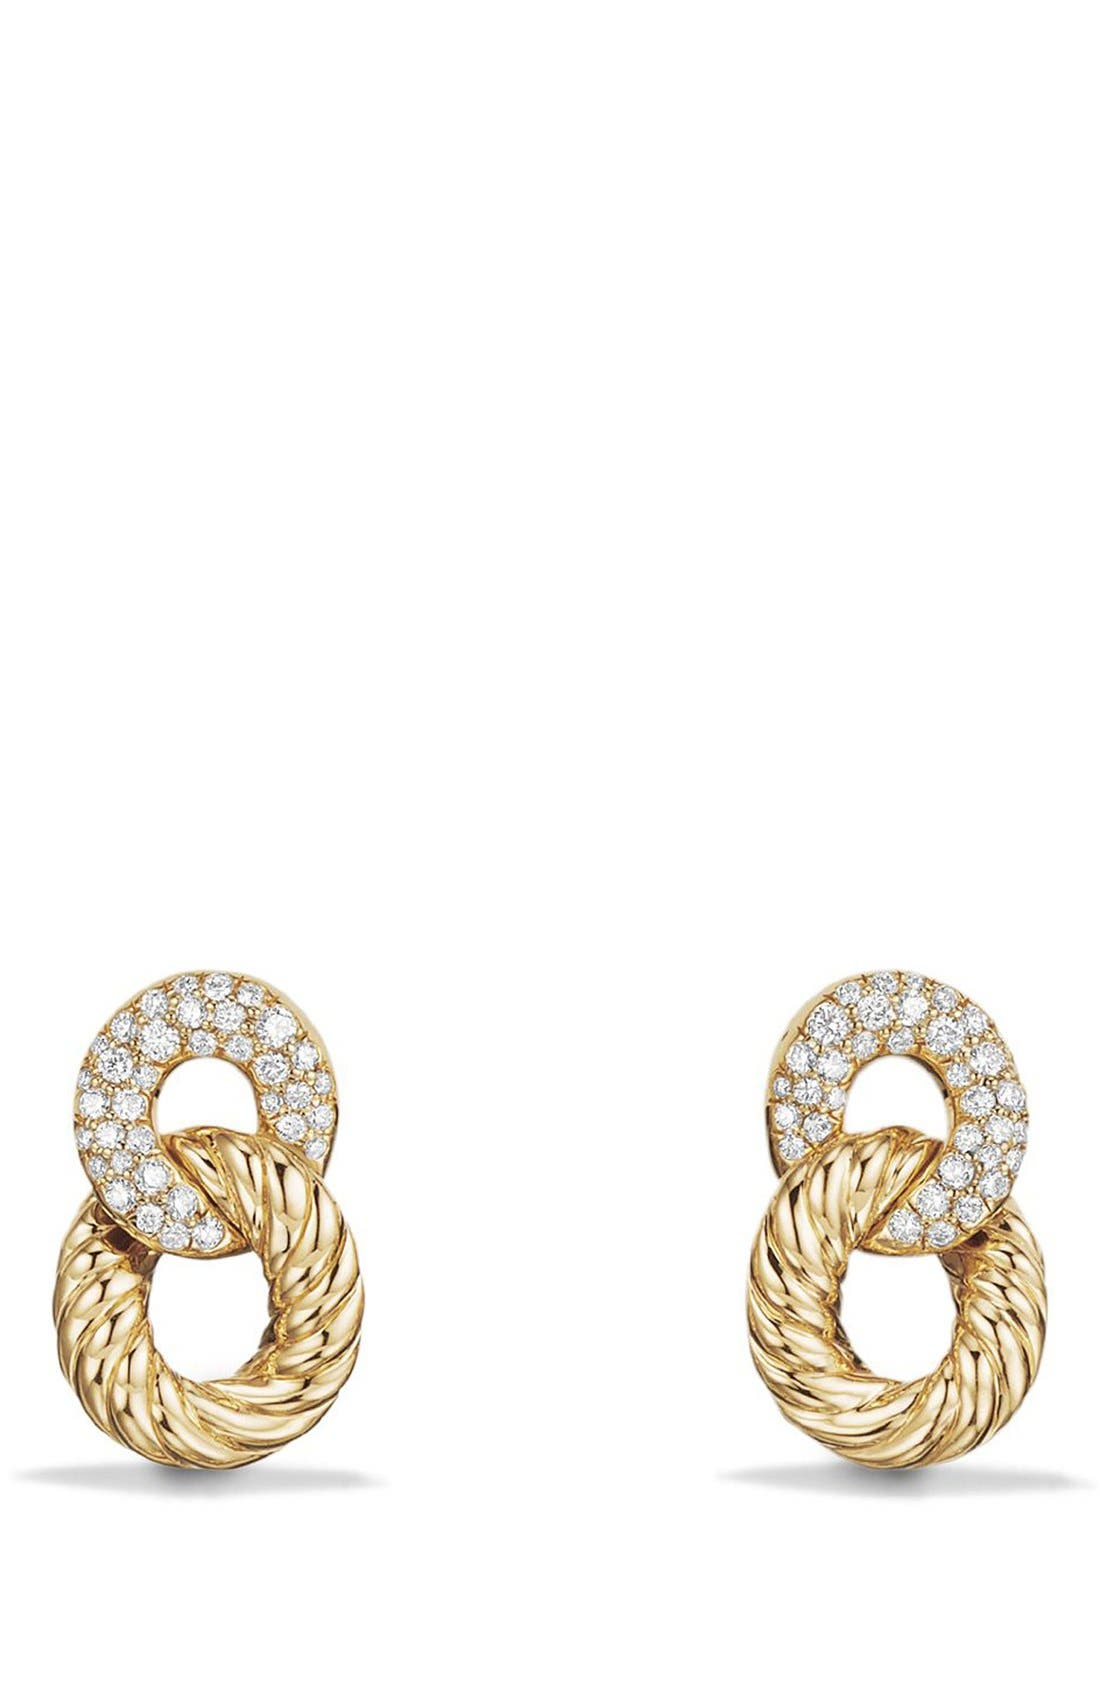 Alternate Image 1 Selected - David Yurman Extra-Small Curb Link Drop Earrings with Diamond in 18K Gold